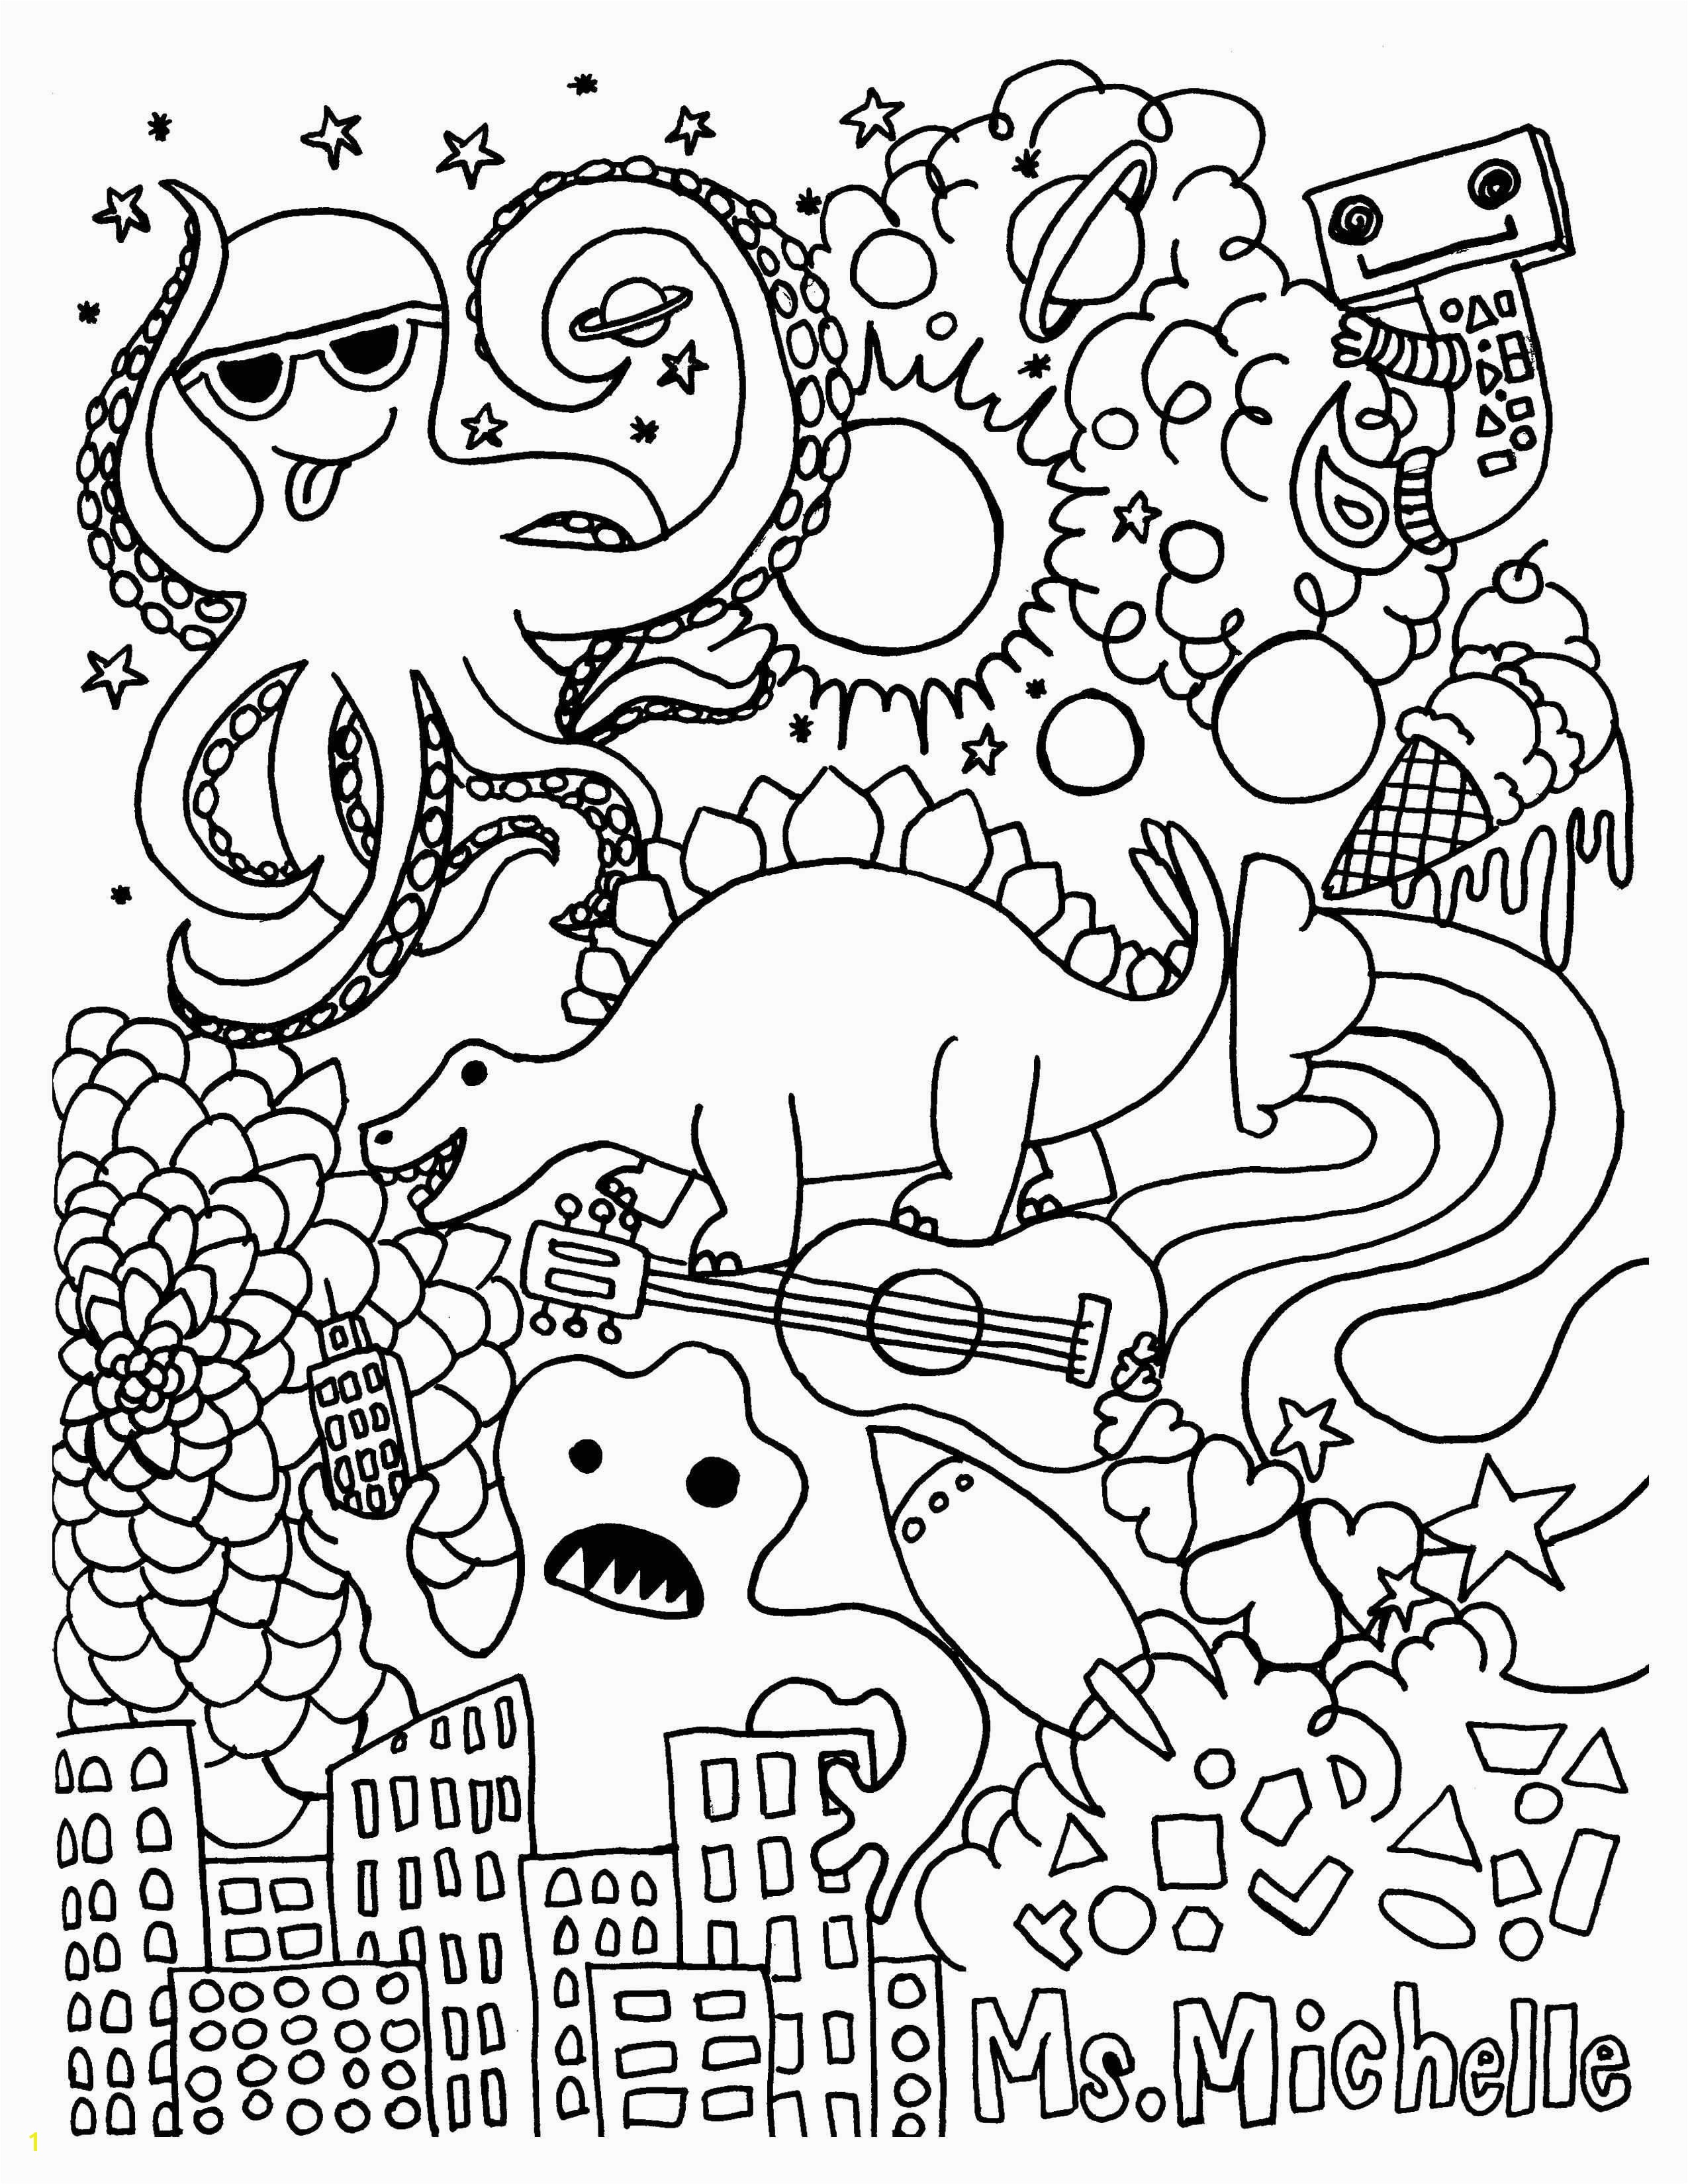 Bible Christmas Coloring Pages Free Free Coloring Pages Bible Awesome Free Coloring Pages for